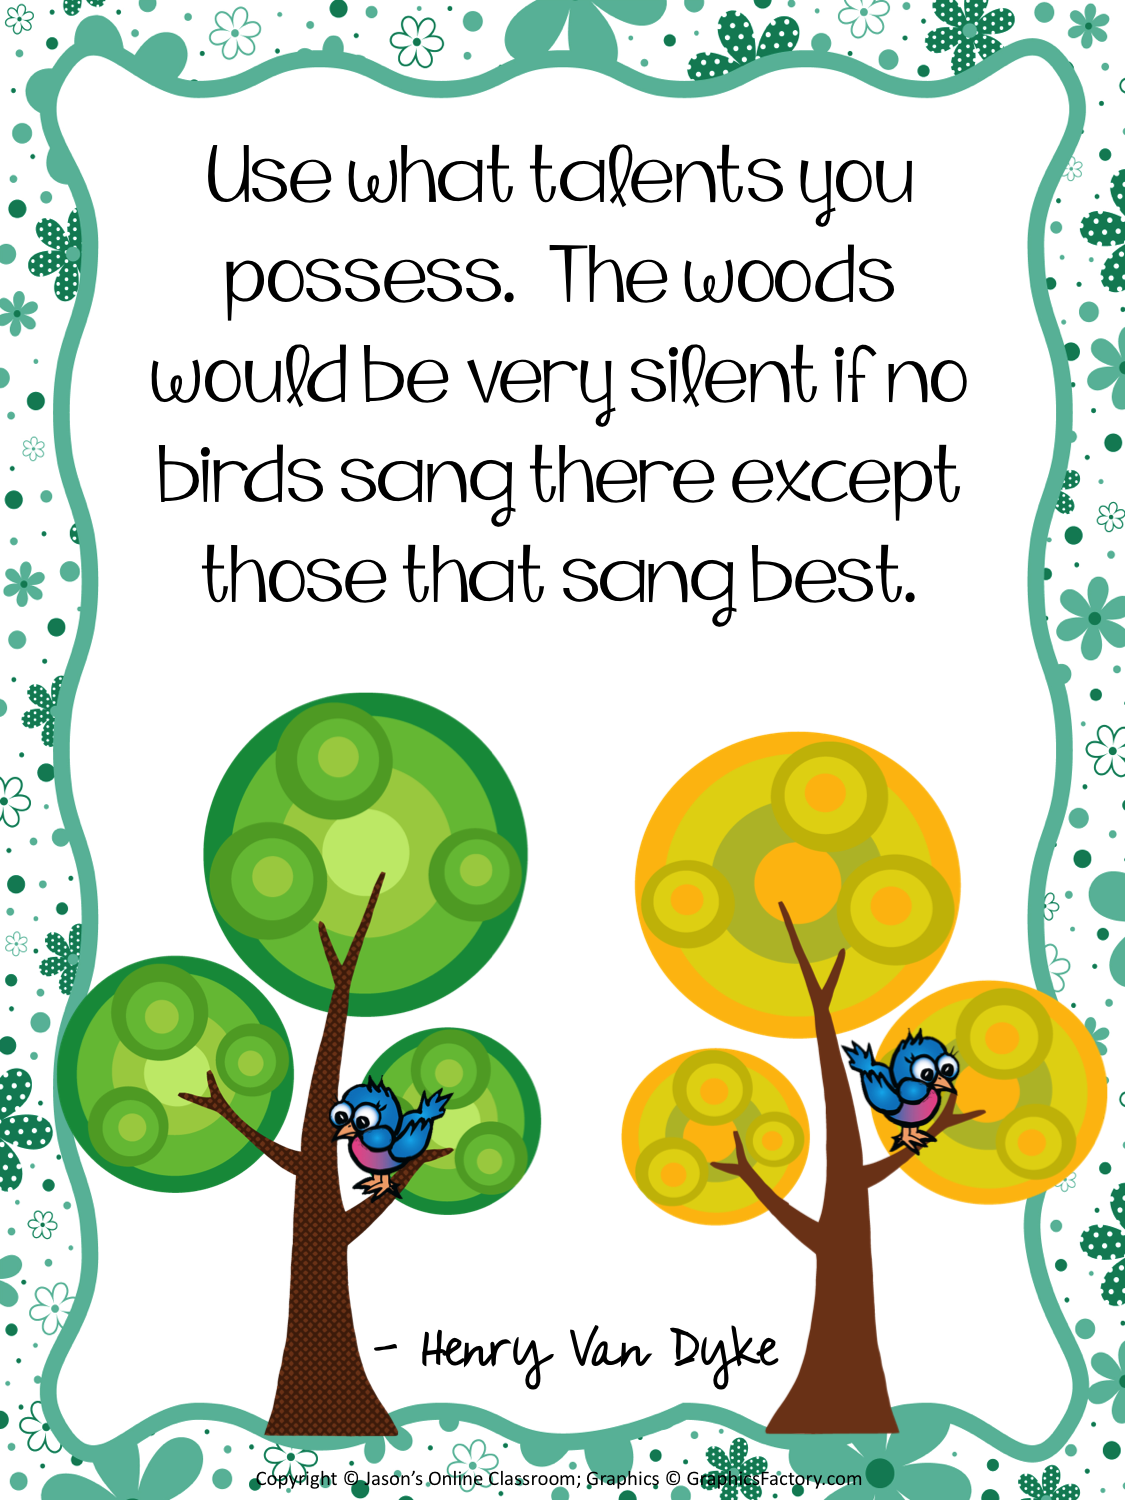 10 free inspirational quotes classroom posters 8 5 x 11